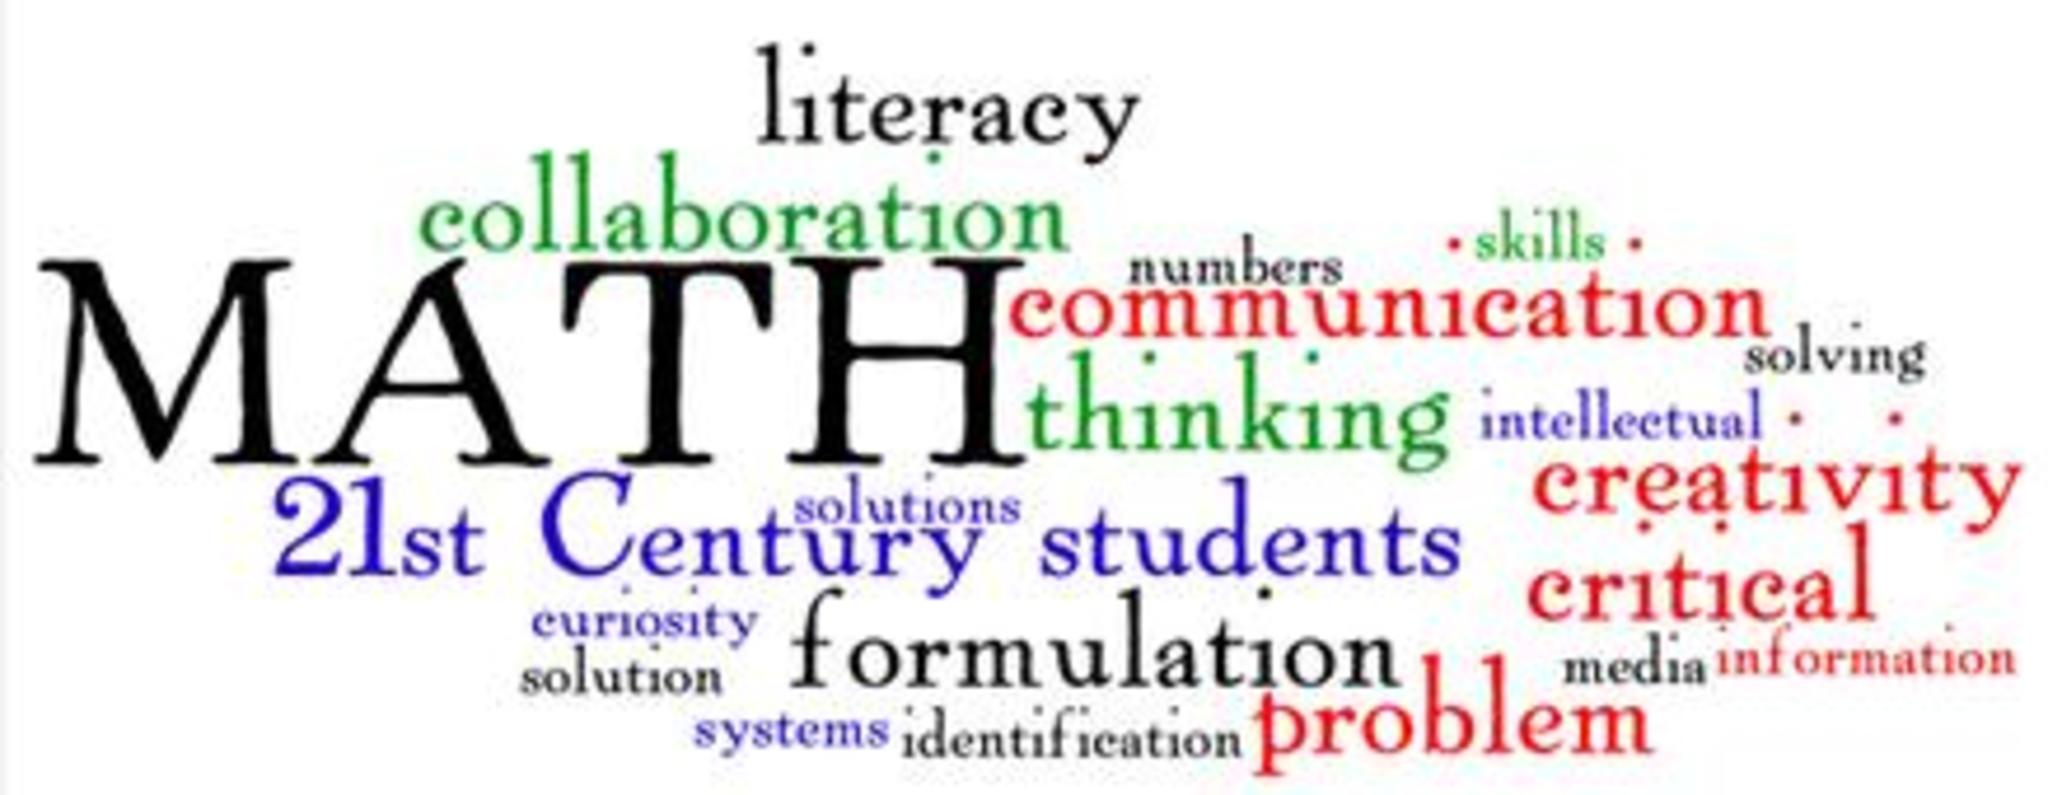 critical thinking essence for teaching mathematics and mathematical problem solving skills